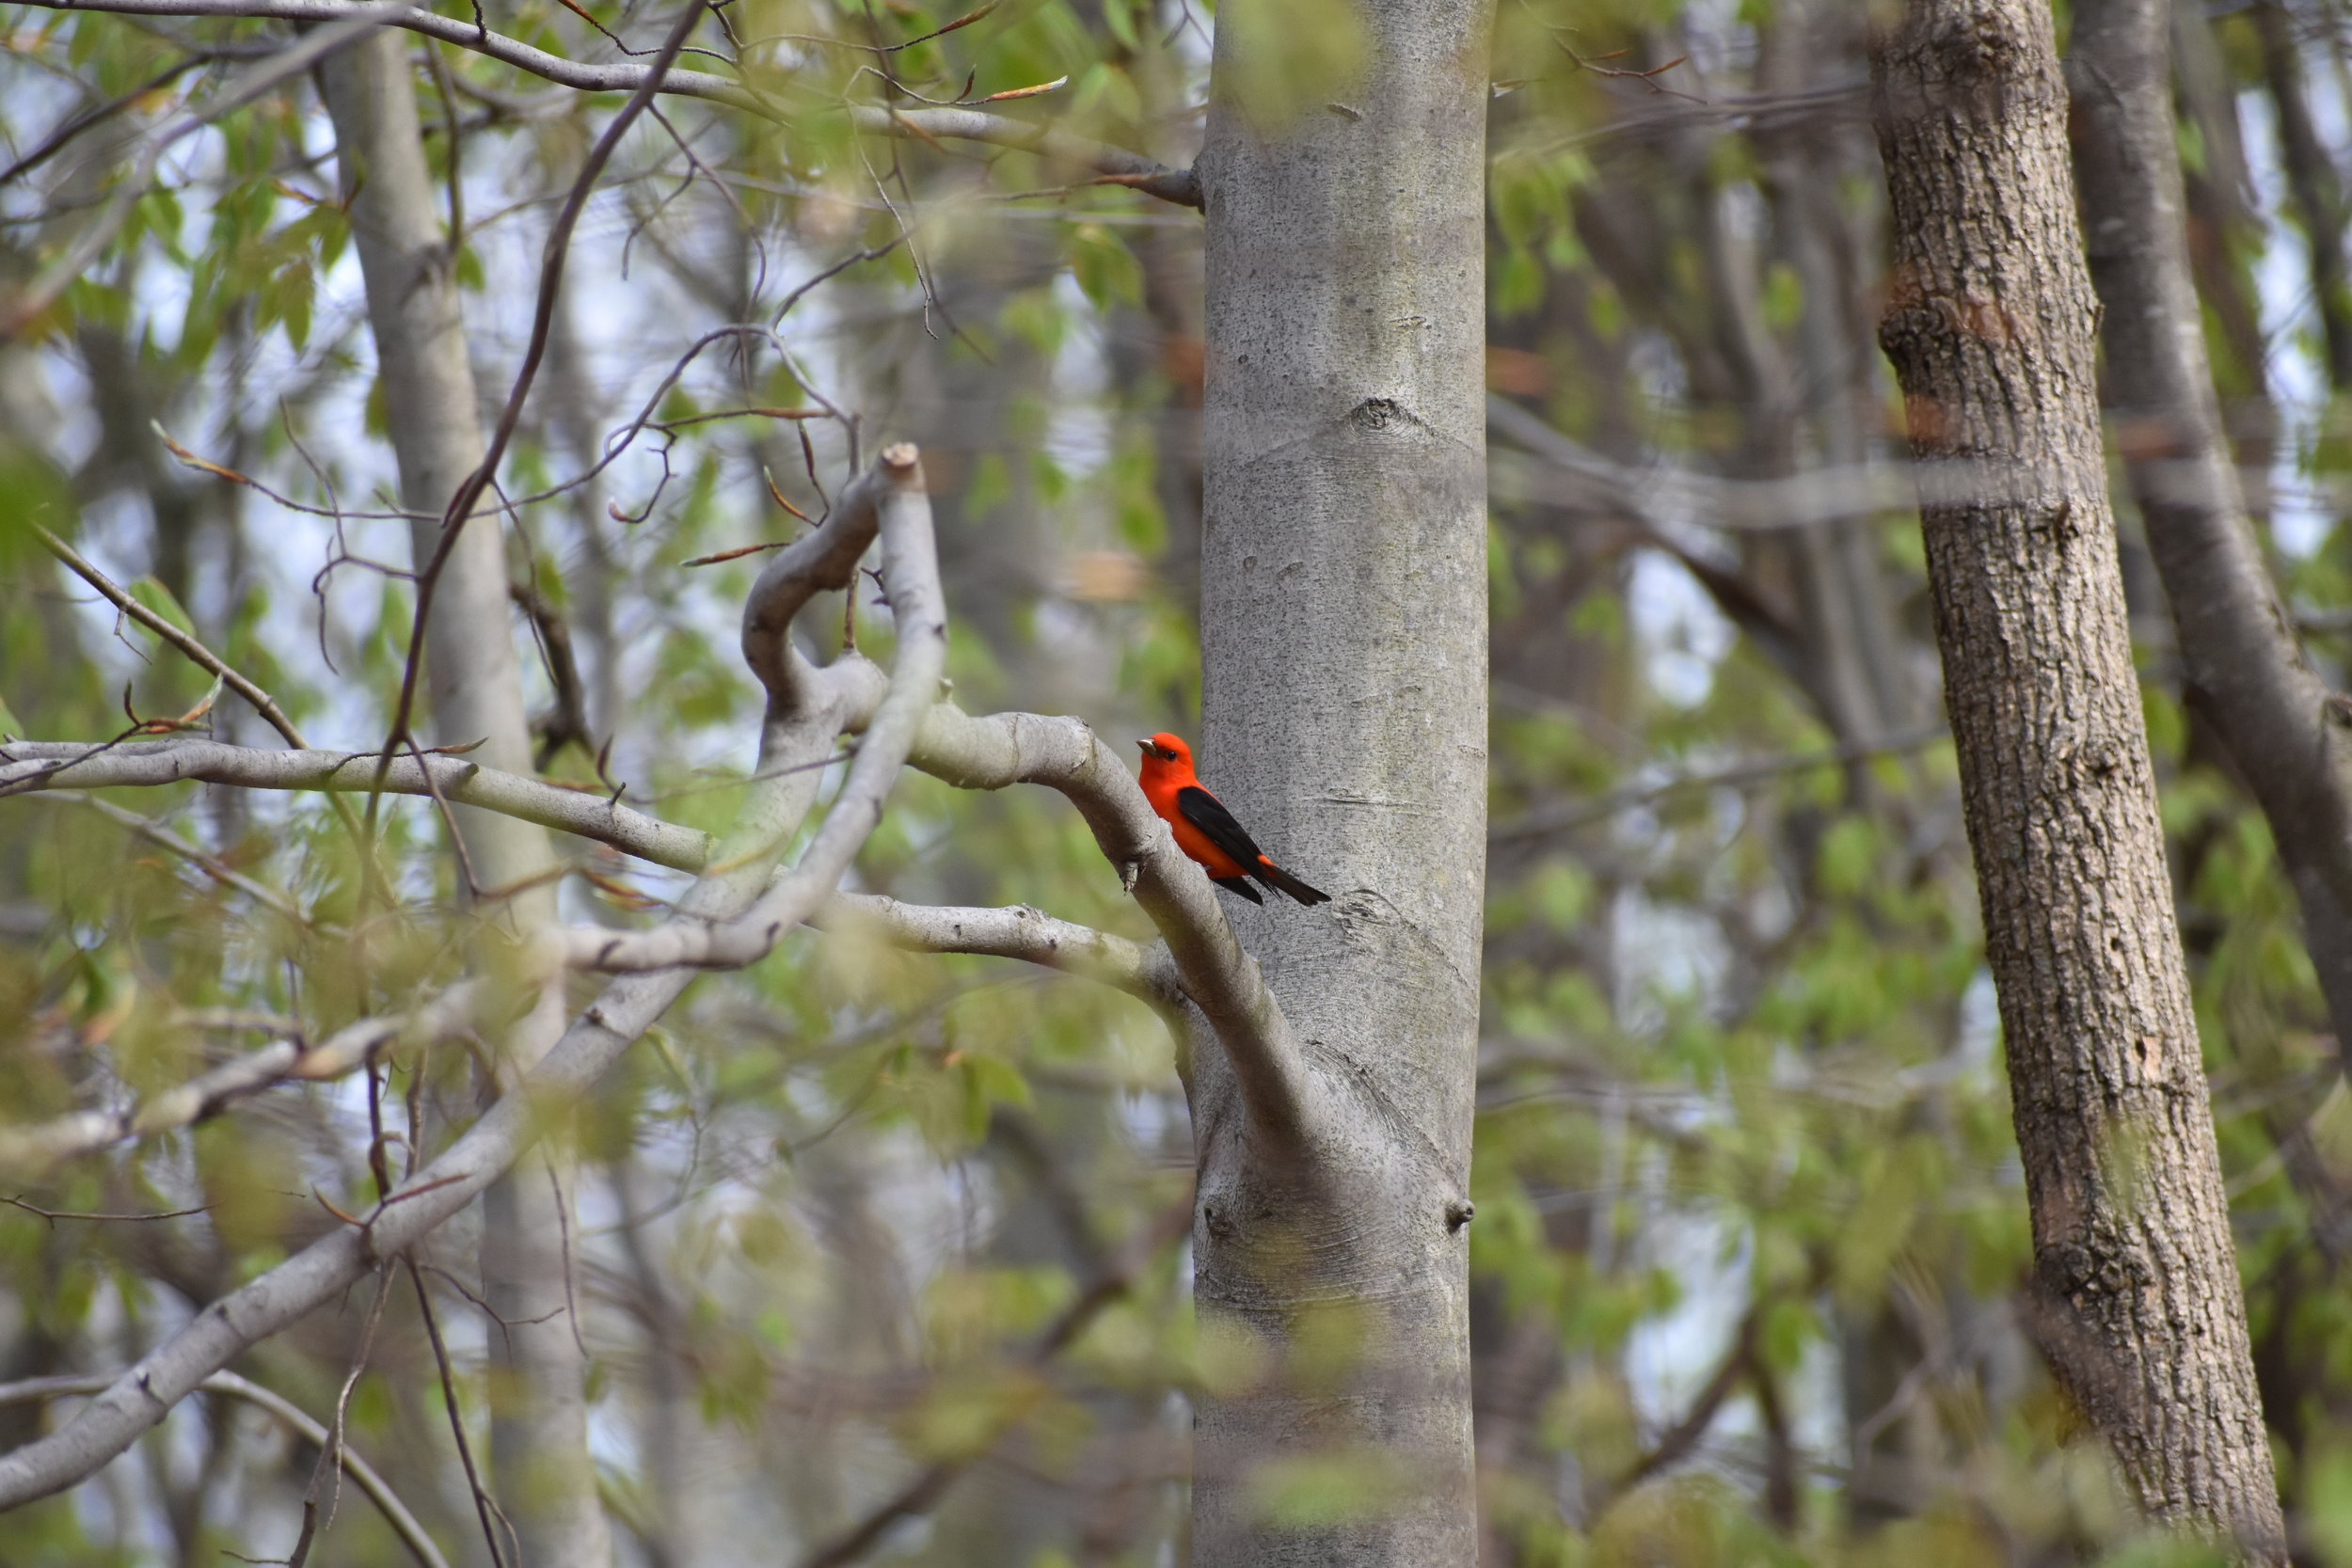 Scarlet Tanager in American Beech tree; one of their favored trees